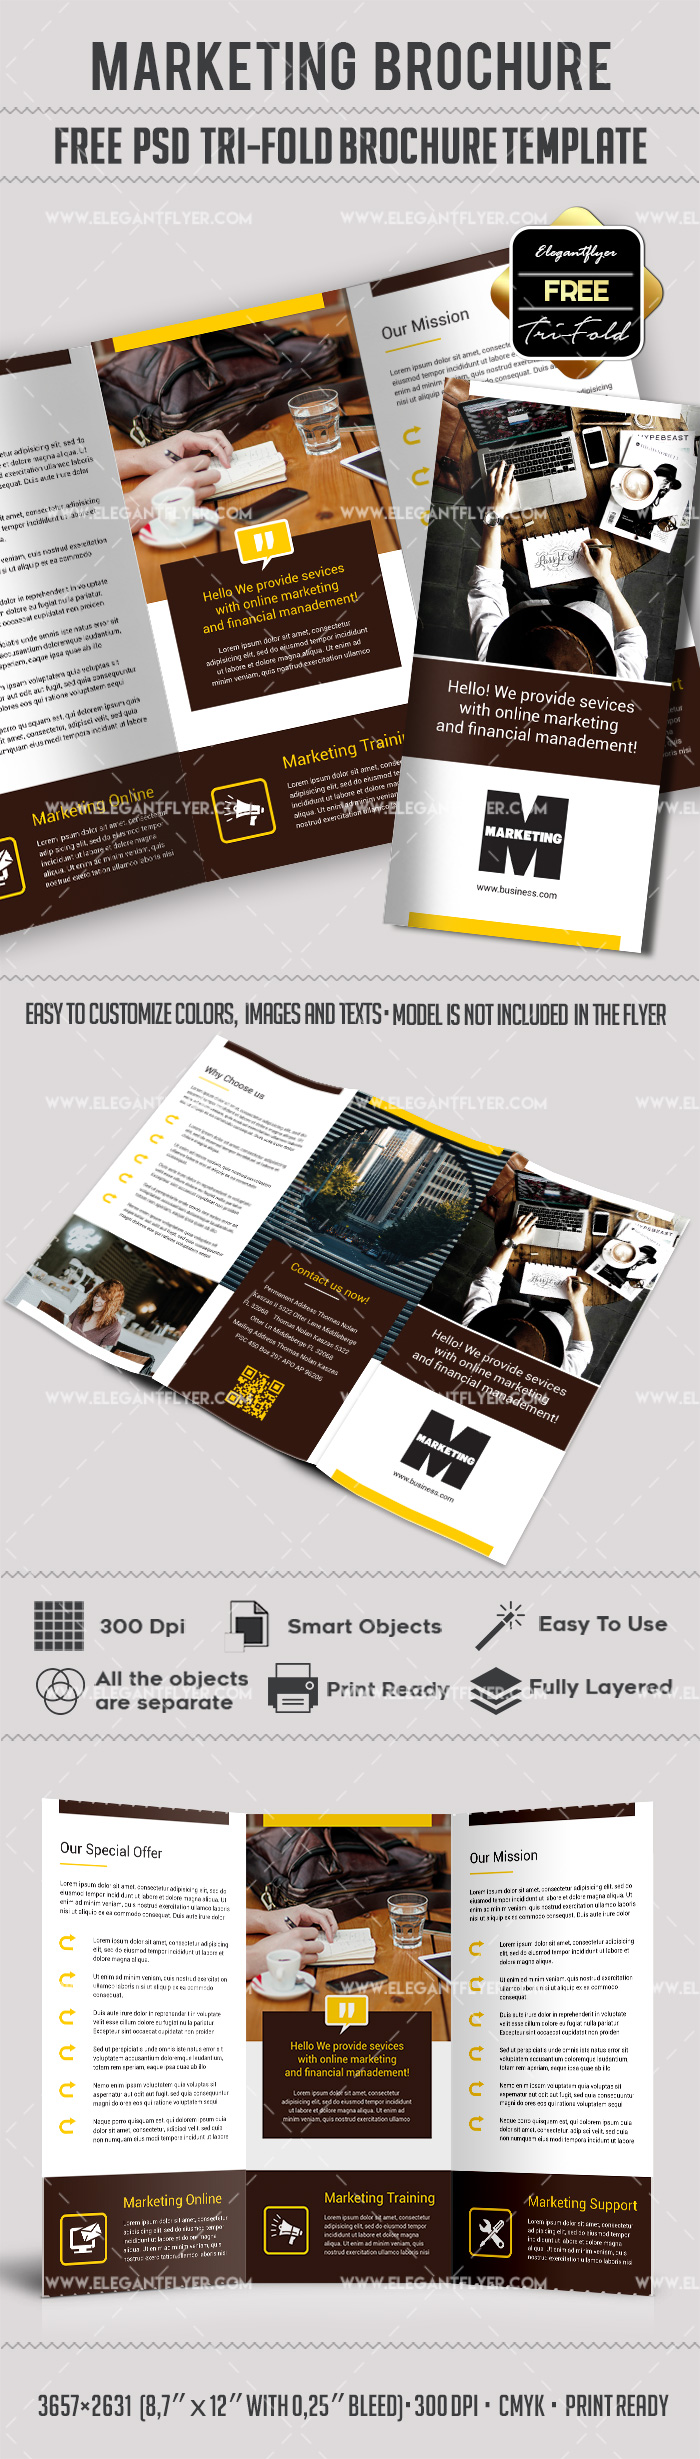 sample brochure templates free - marketing free tri fold psd brochure template by